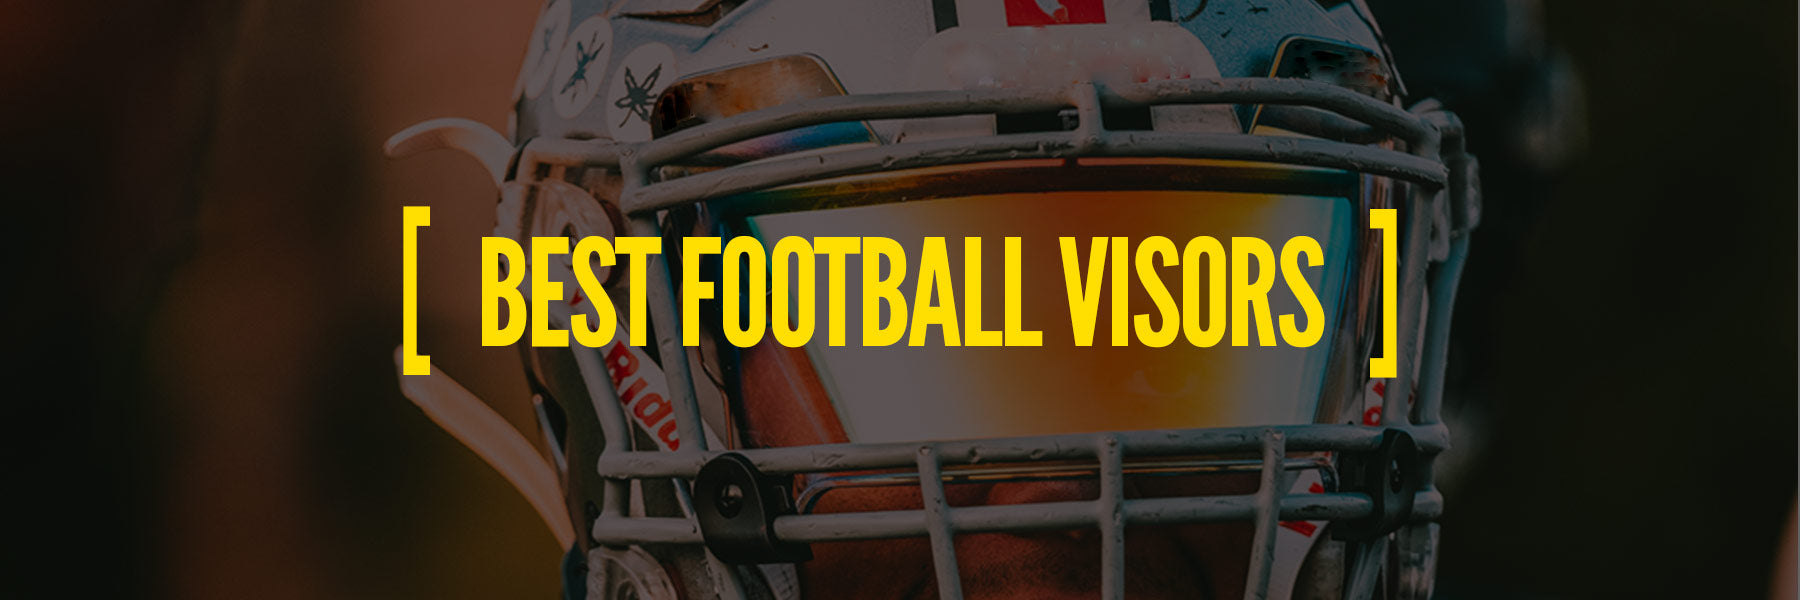 What's the best football visor?